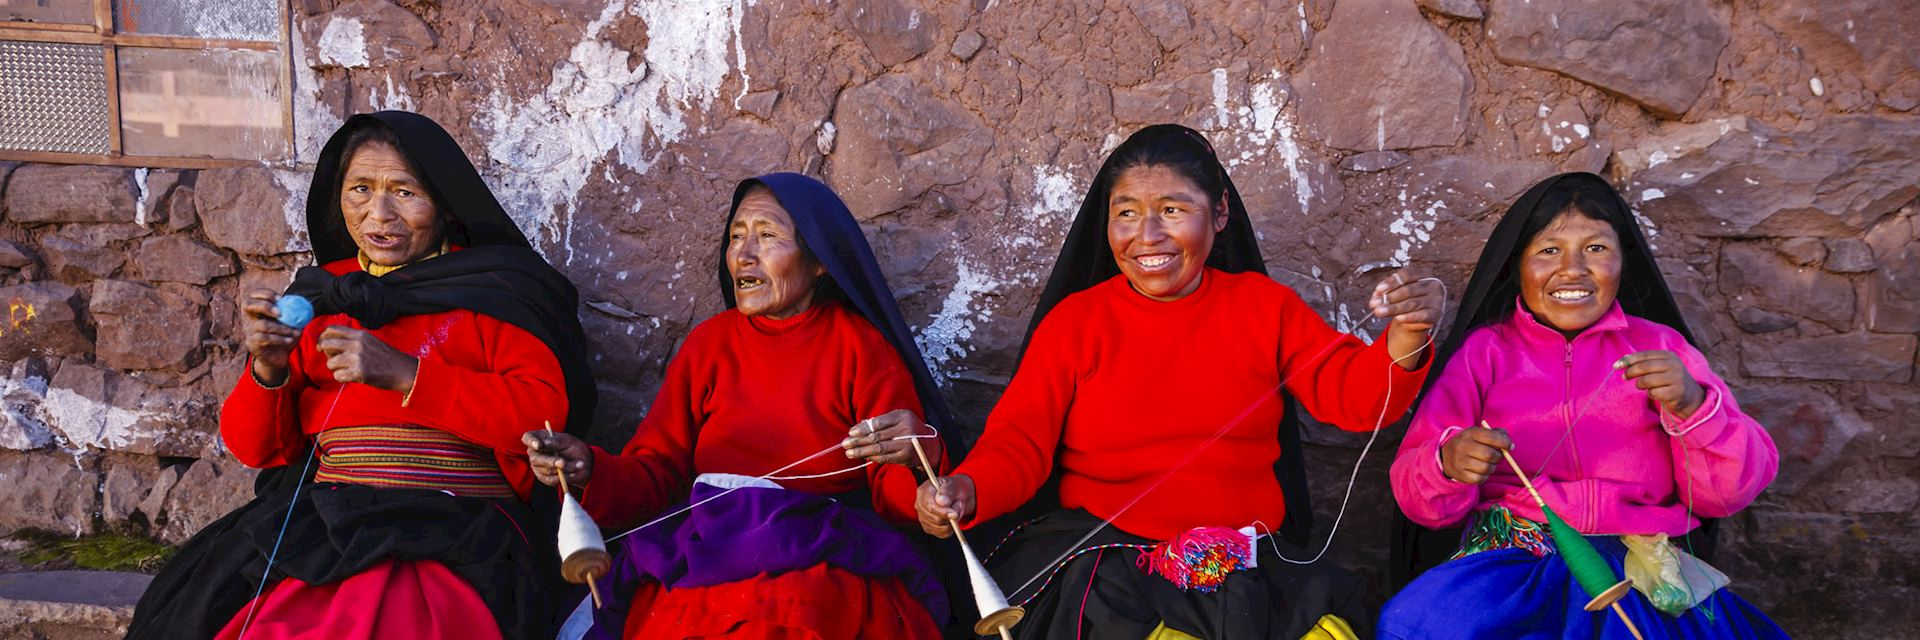 Women spinning wool on Taquile Island, Lake Titicaca, Peru